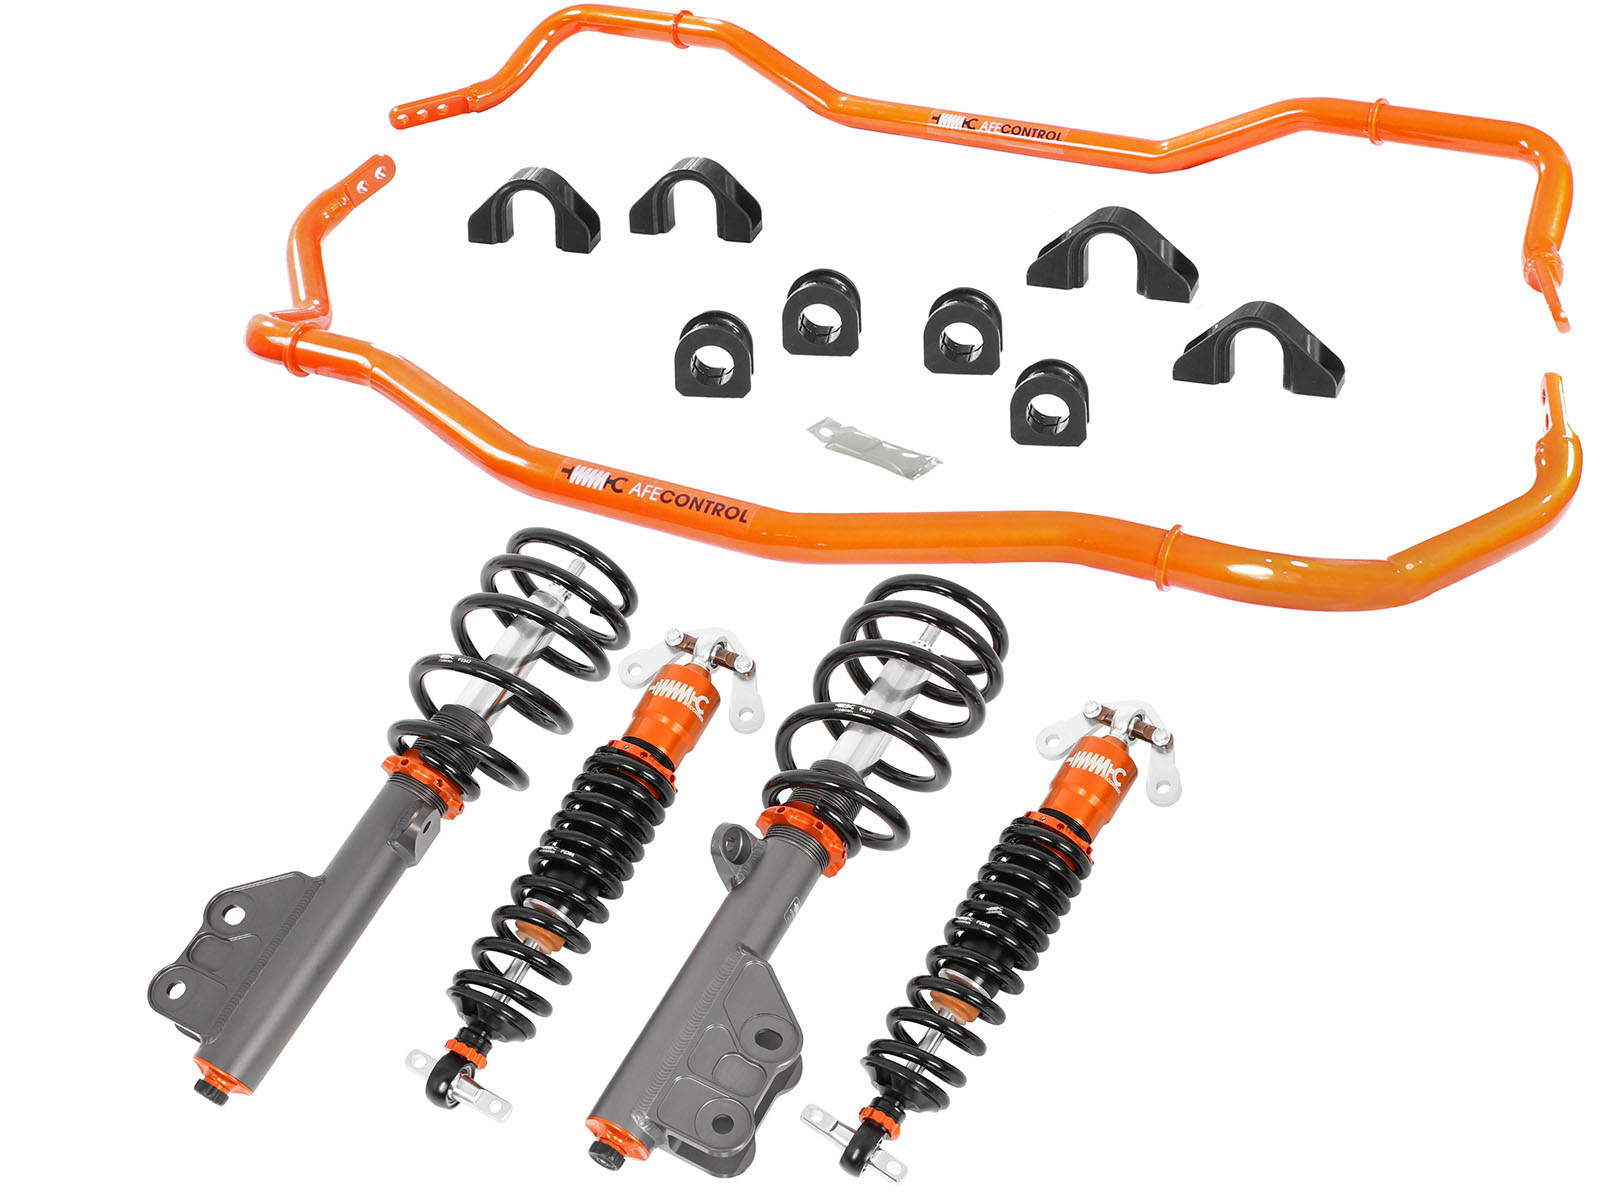 Ford Mustang stage-2 suspension kit